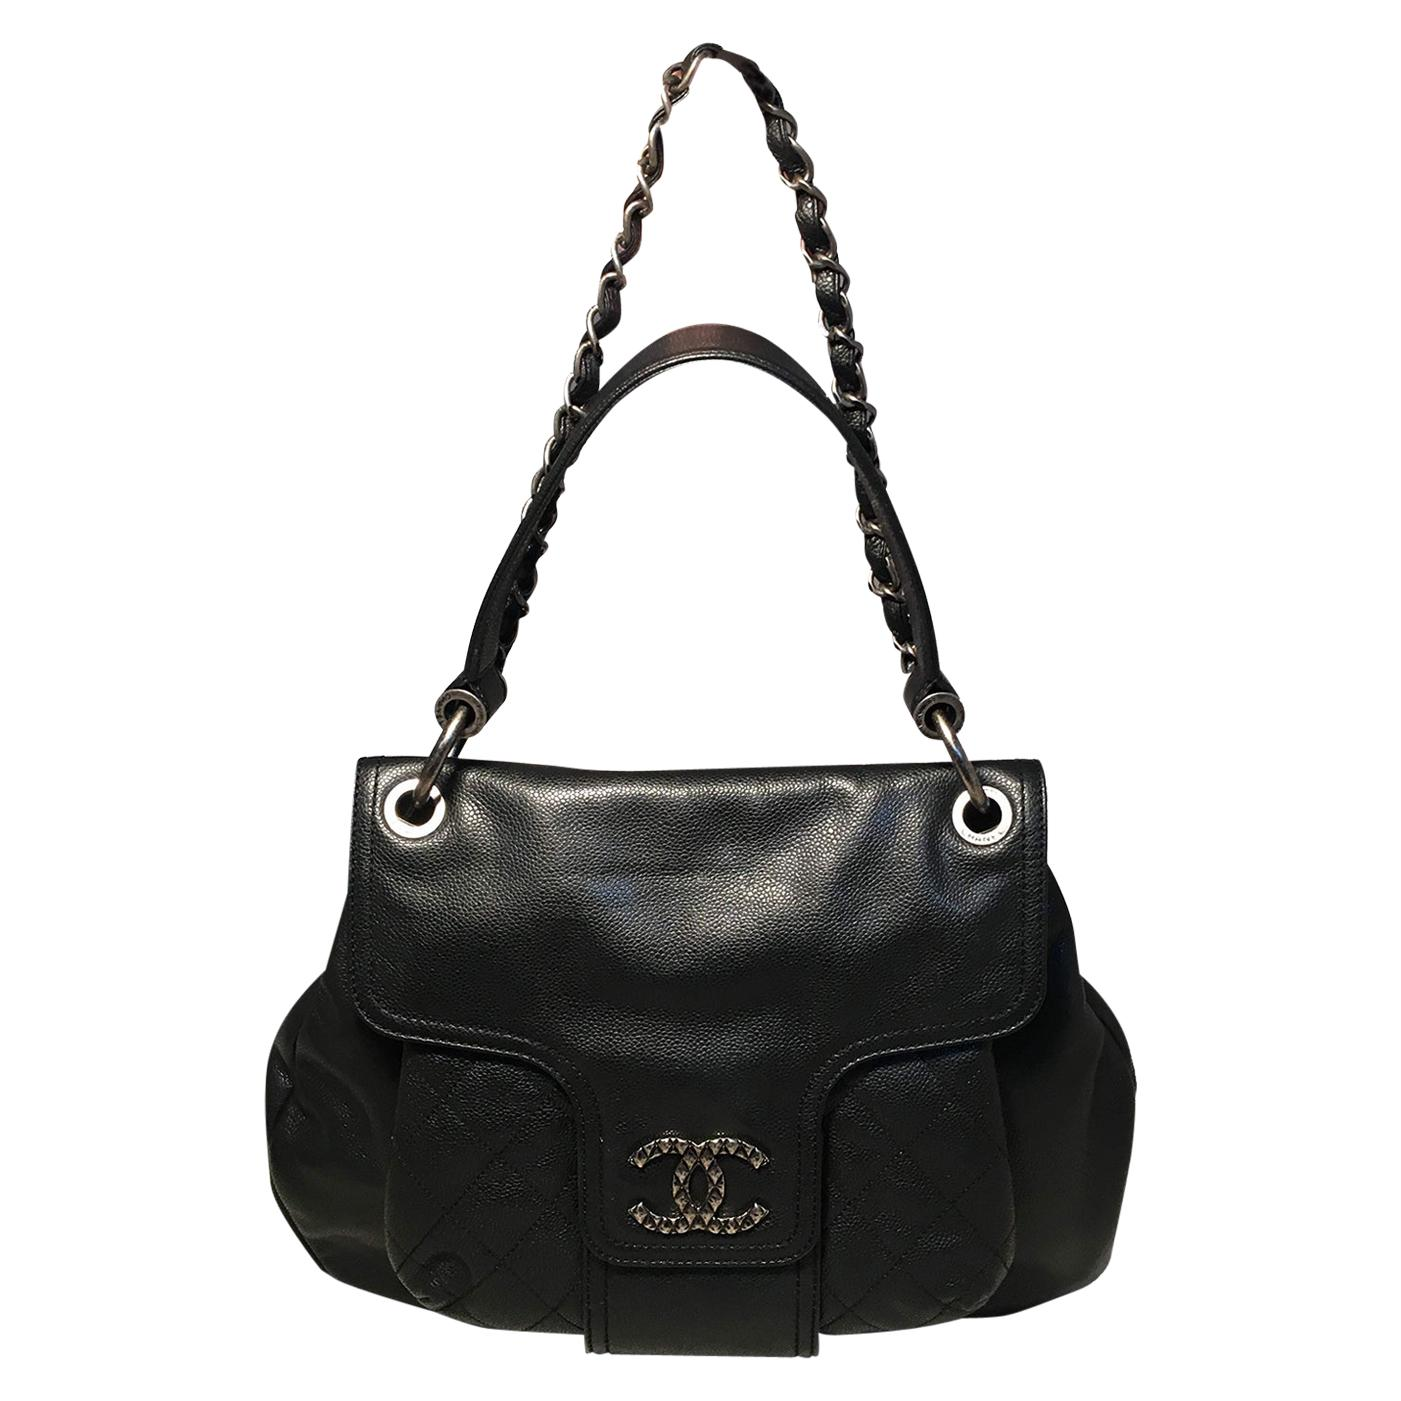 Chanel Coco Rider Flap Bag Production Sample